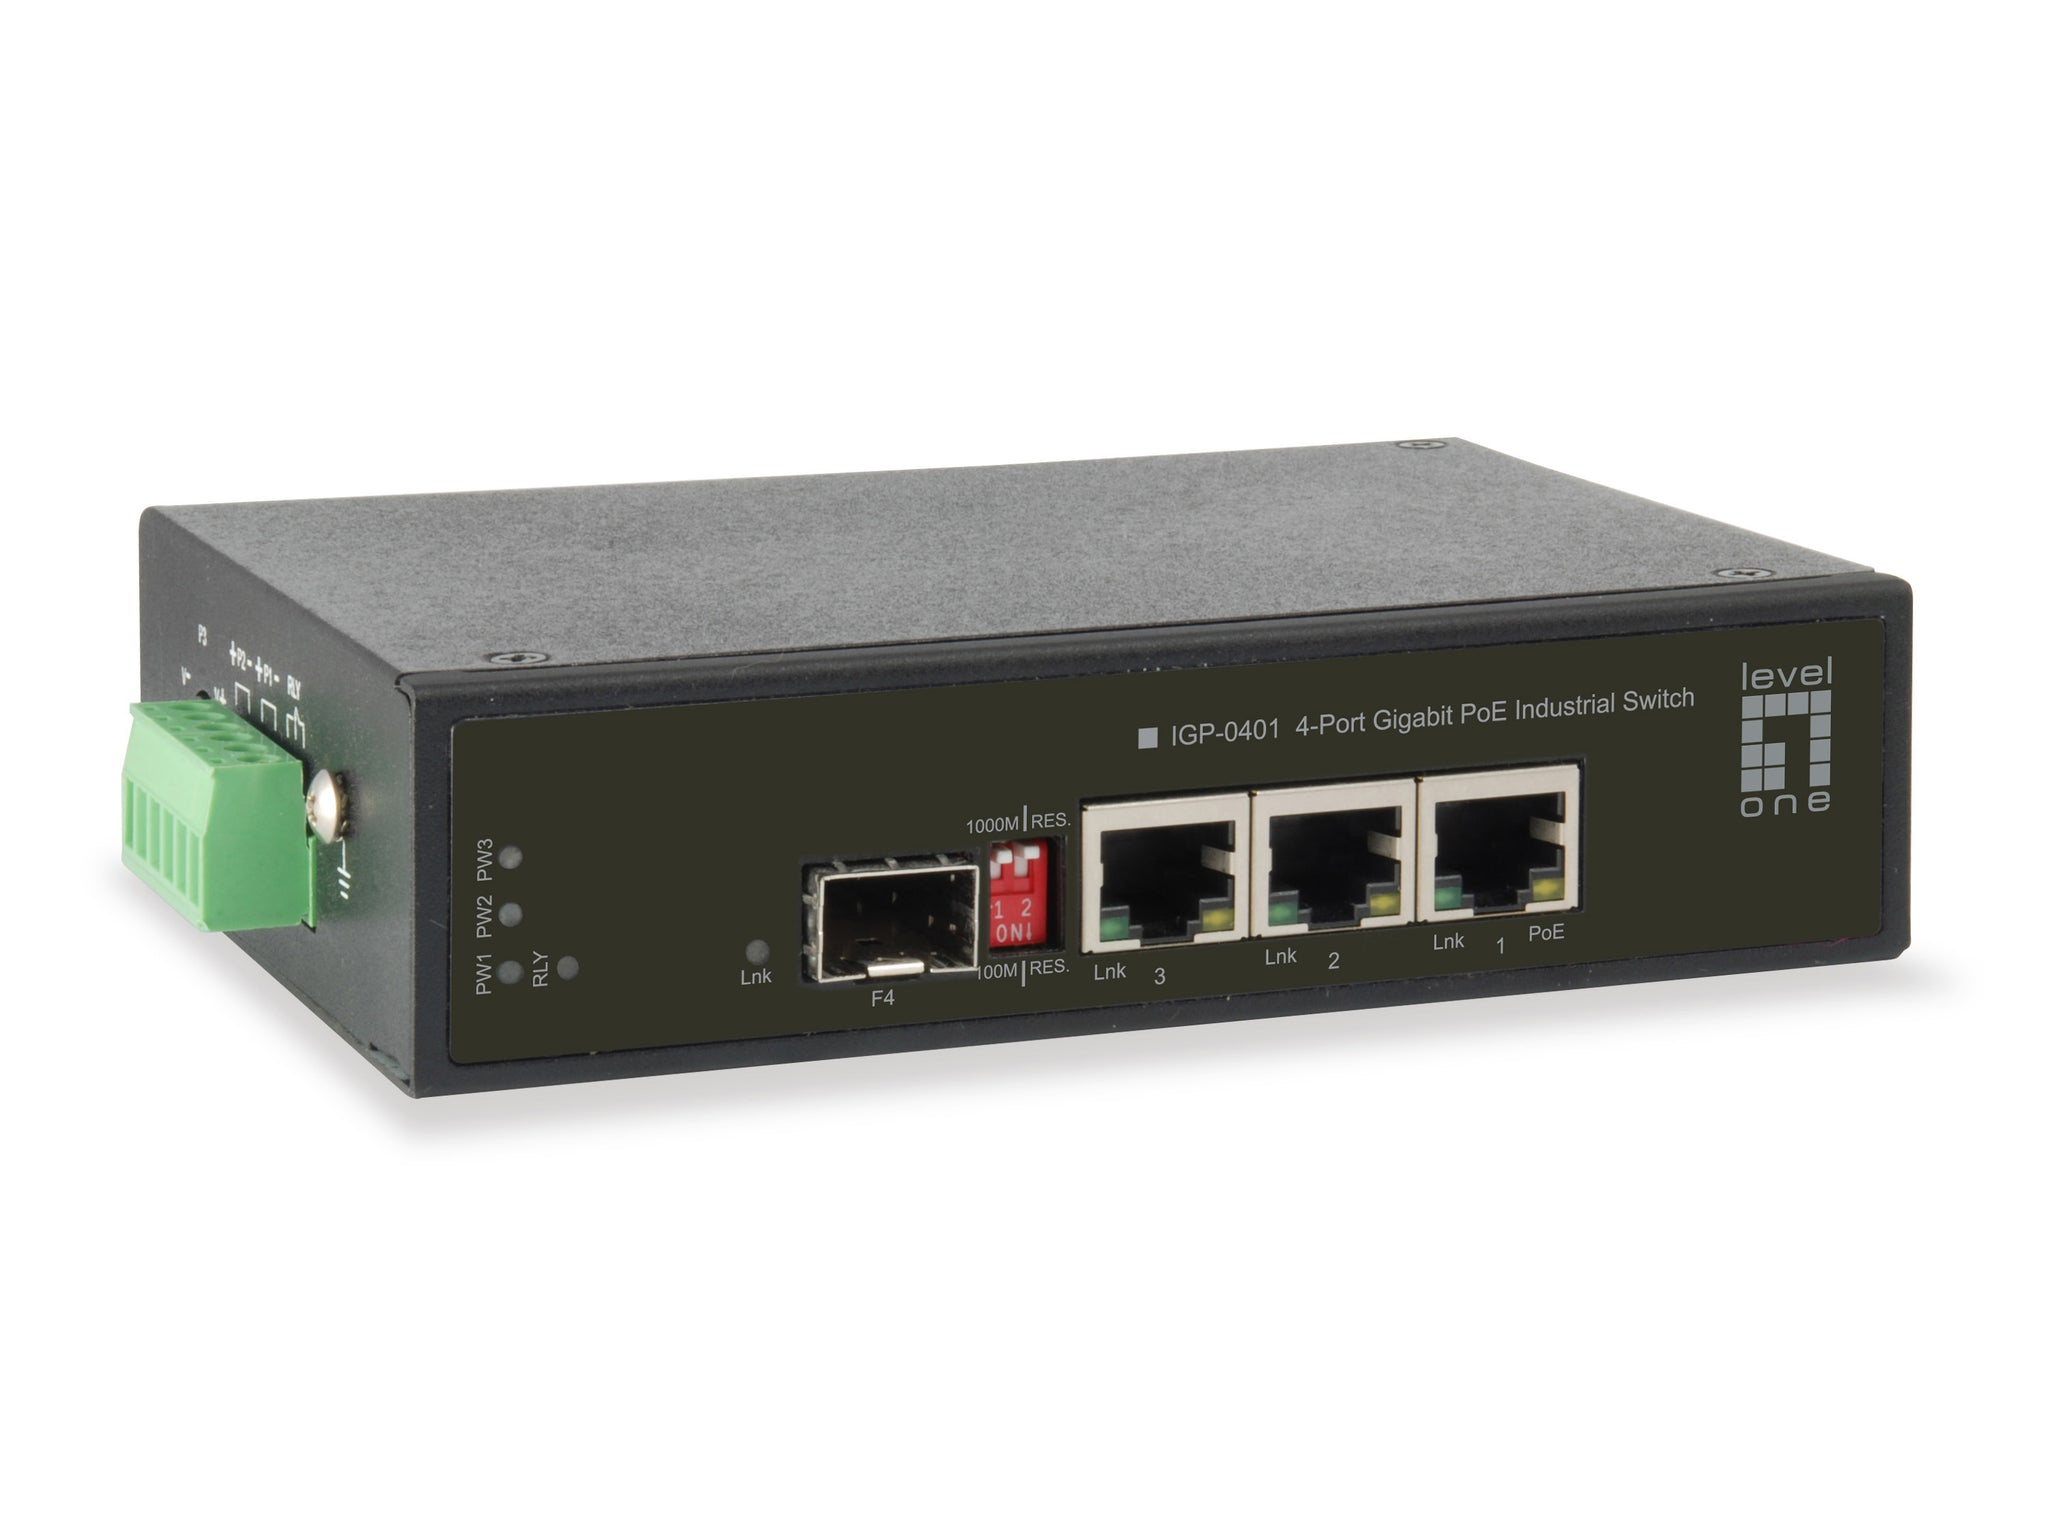 IGP-0401 4-Port Gigabit PoE Industrial Switch, 2 PoE Outputs, 1 x Gigabit SFP, 1 x Gigabit RJ45, 65W